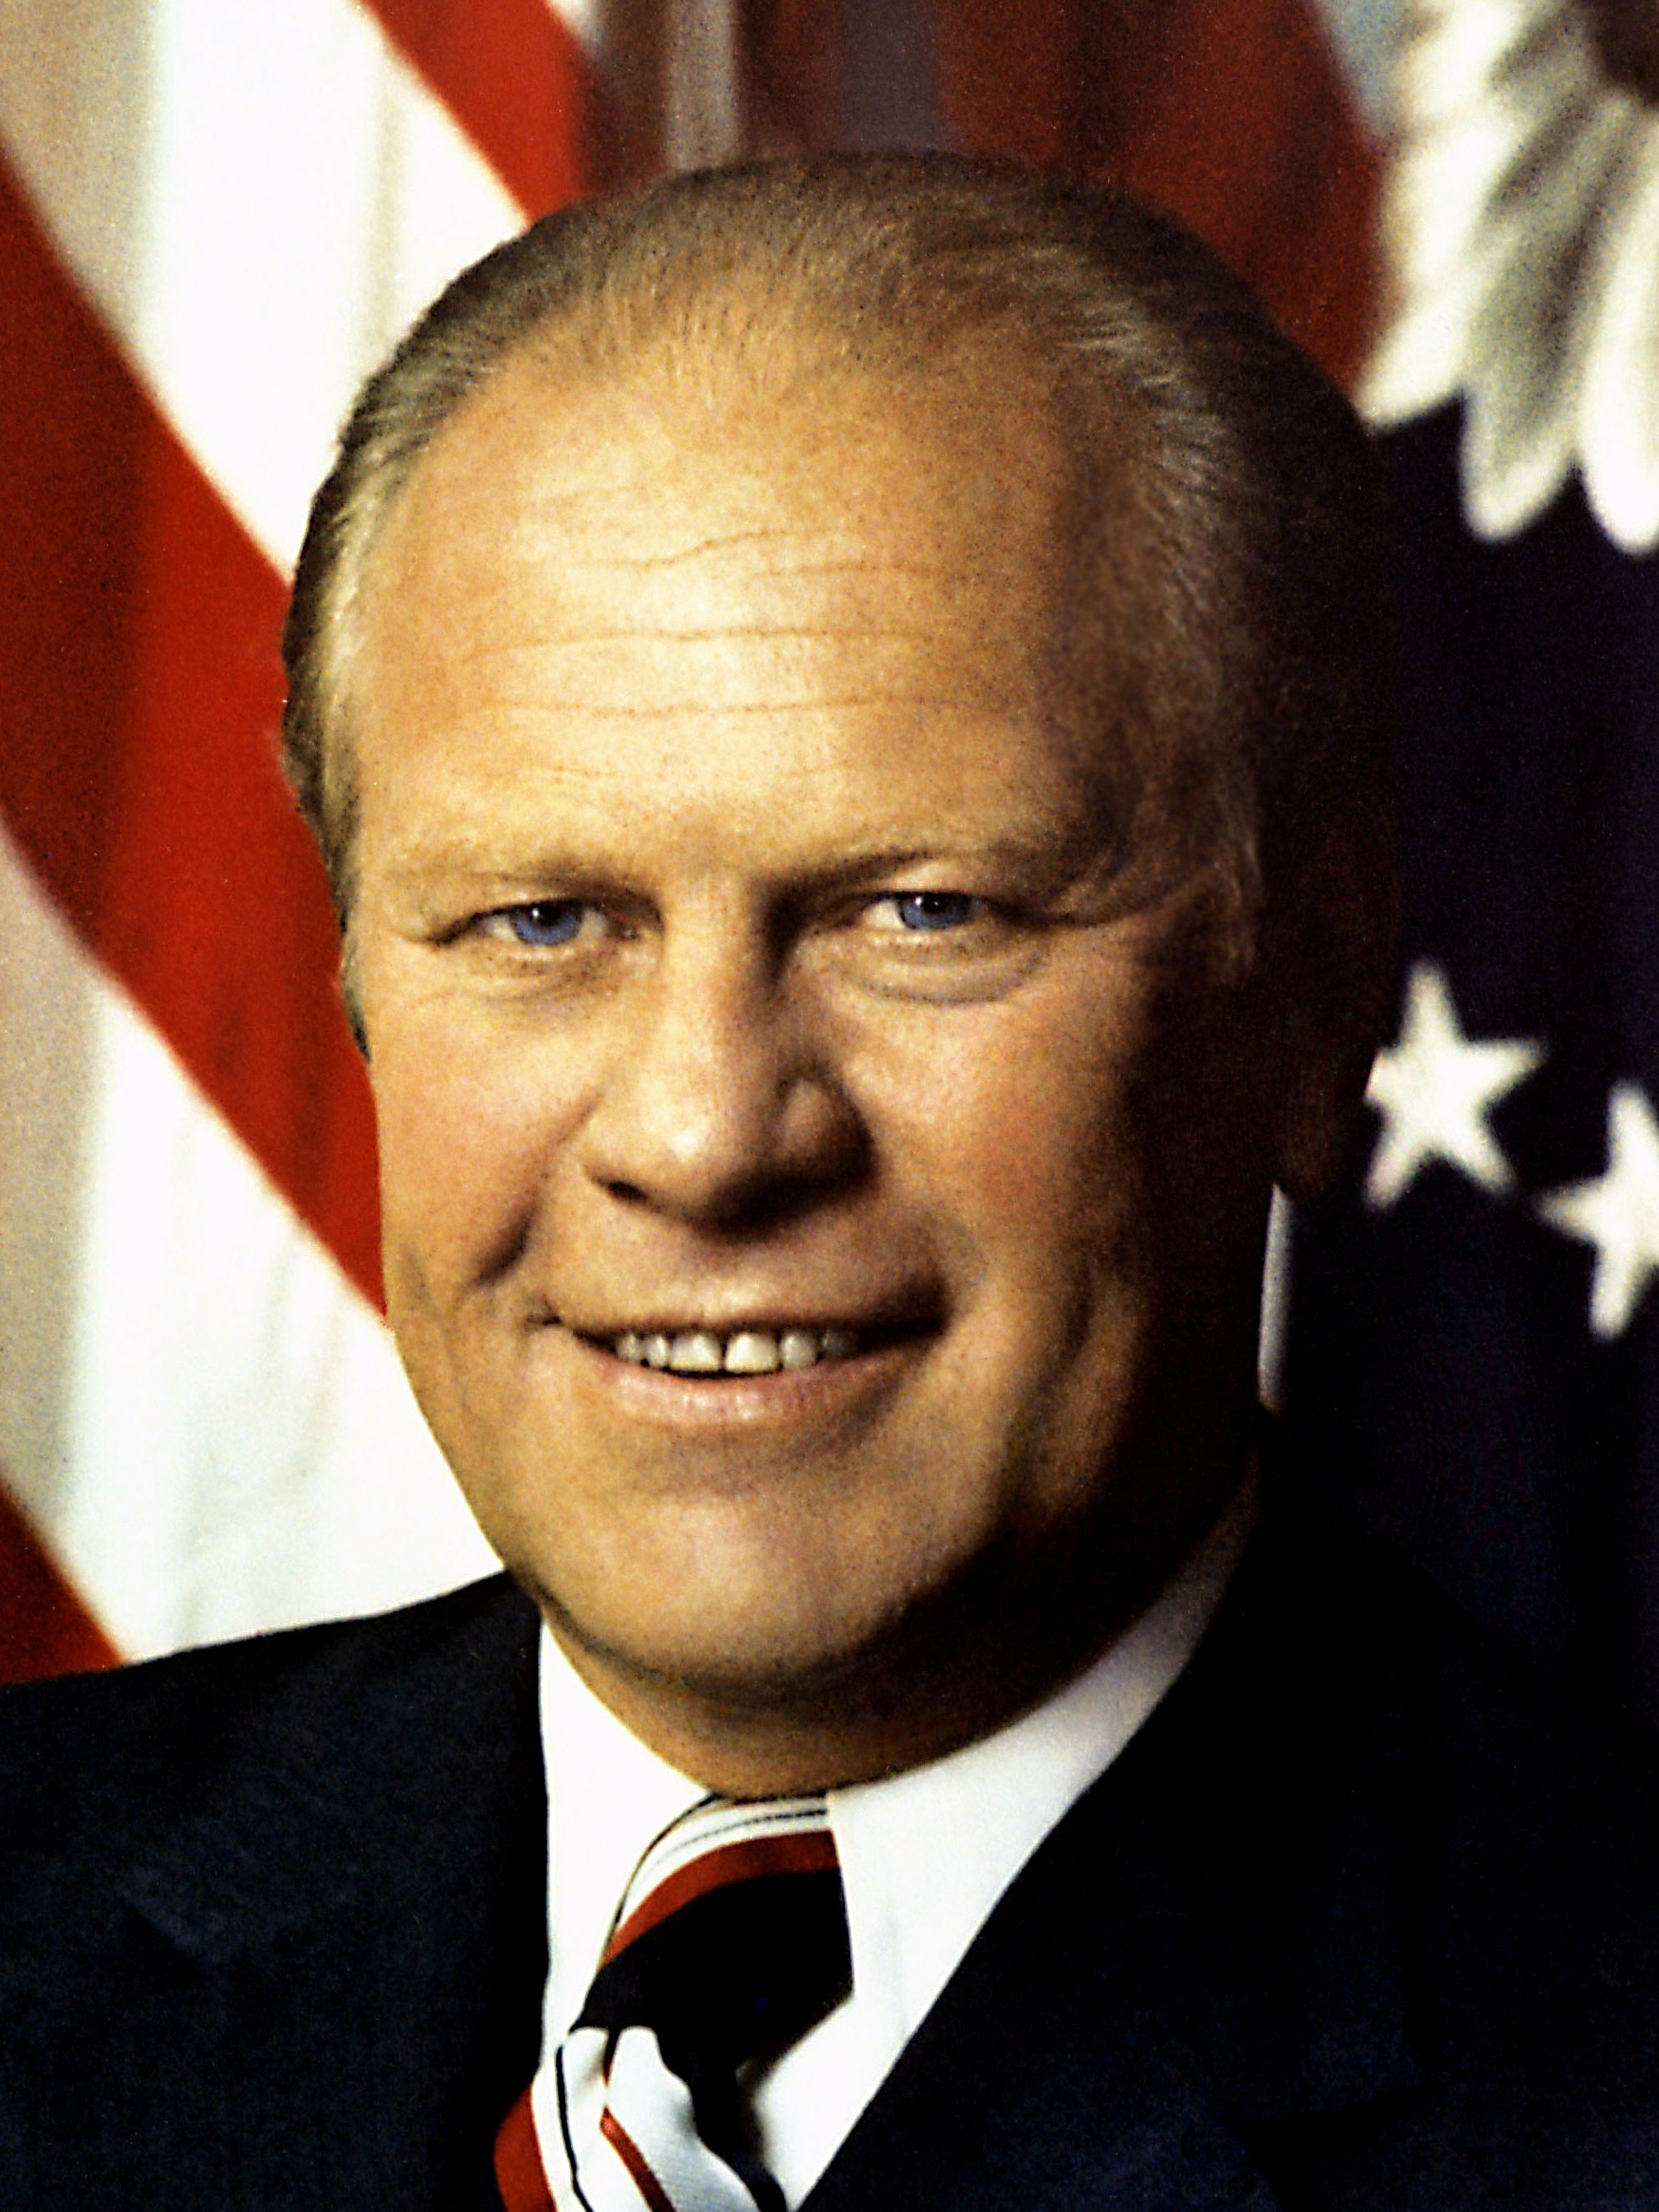 Serving as the 38th President from 1974-1977, Gerald Ford Jr. (1913-2006) was a moderate politician whose presidency was largely overshadowed by Richard Nixon's Watergate scandal. Image obtained from Wikimedia.